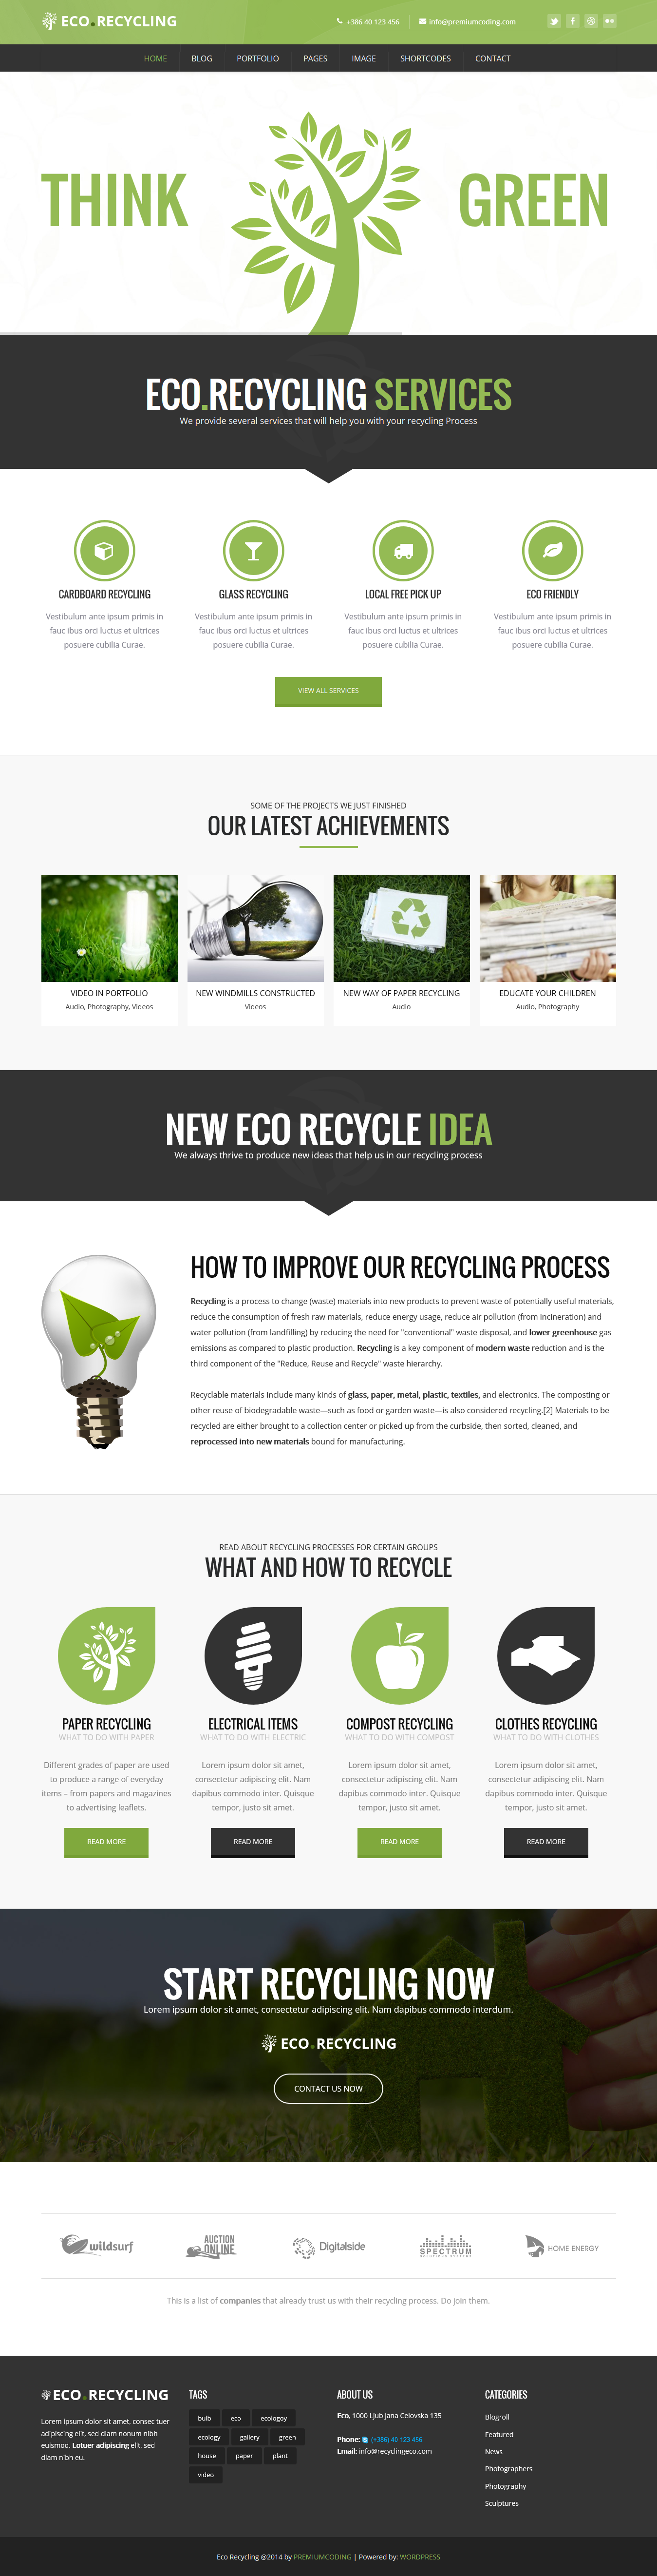 Eco Recycling - Ecology & Nature WordPress Theme | Wordpress, User ...